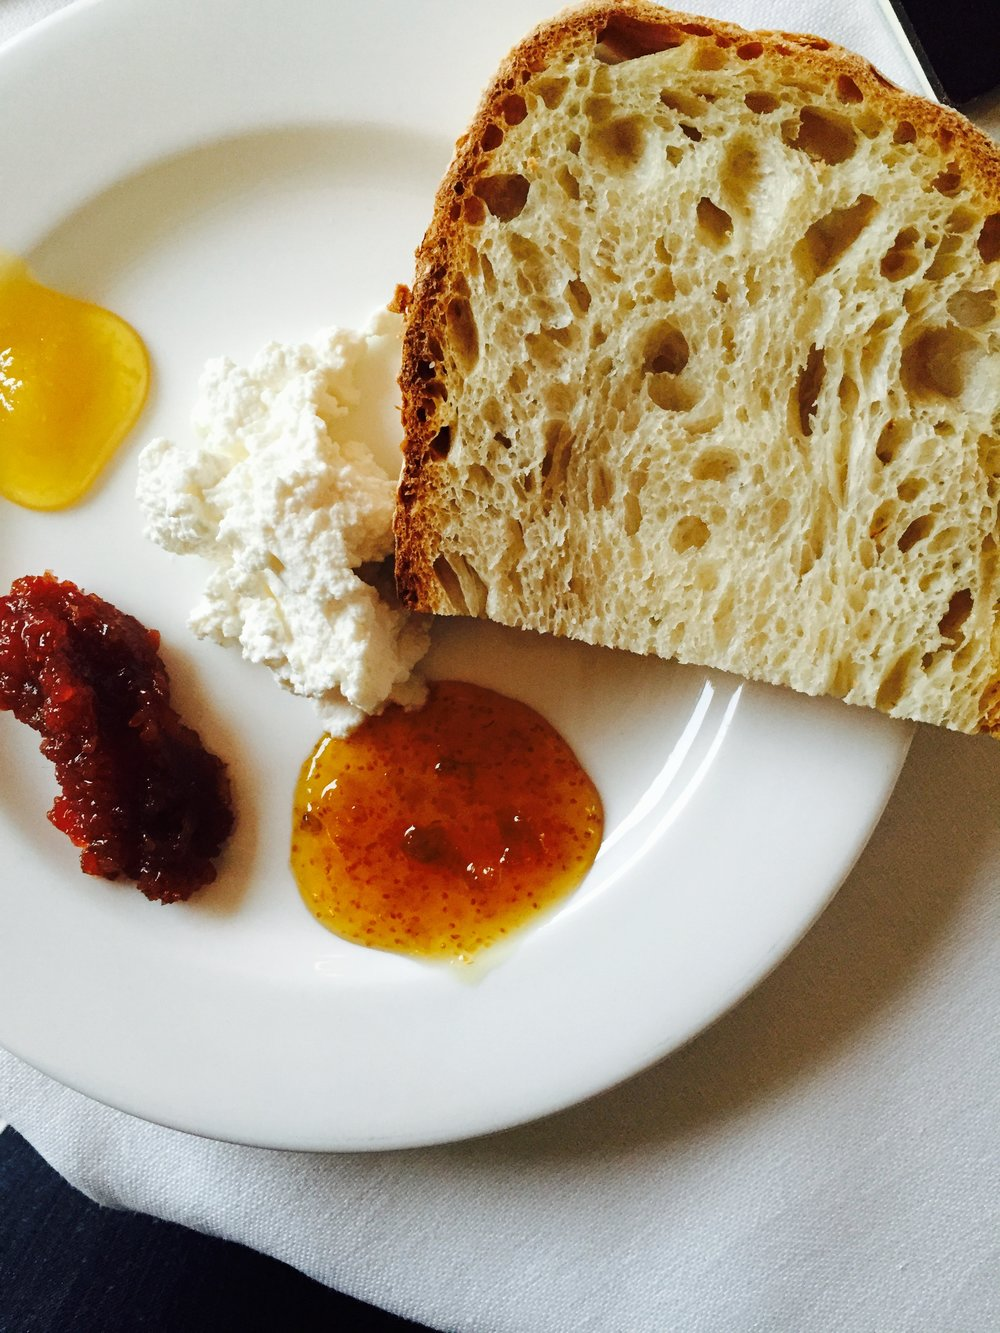 Ricotta, Honey, Fig Preserves and Marmellata in Ischia, Italy, Photo: Danielle Rehfeld